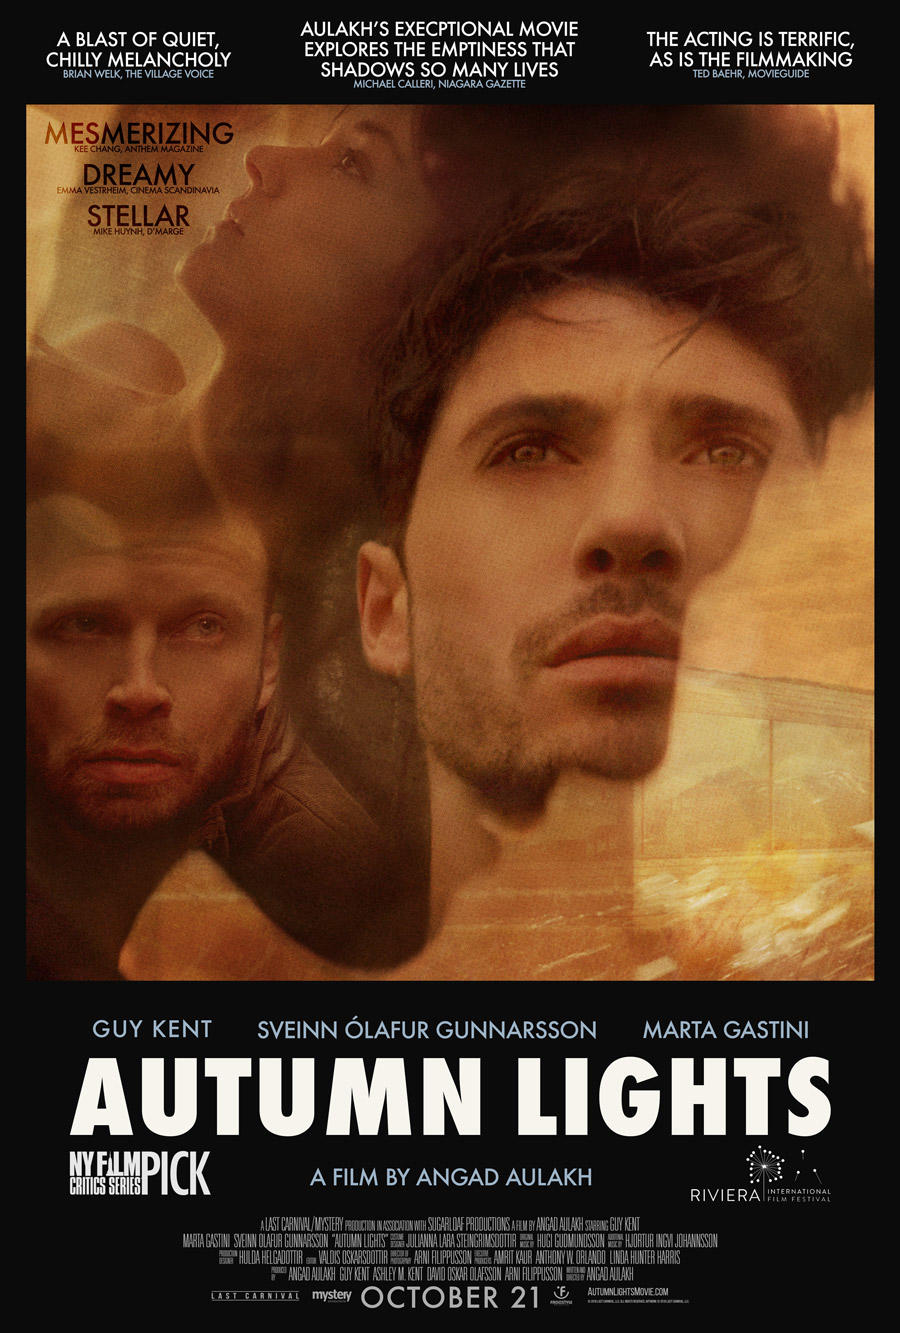 Autumn Lights poster art